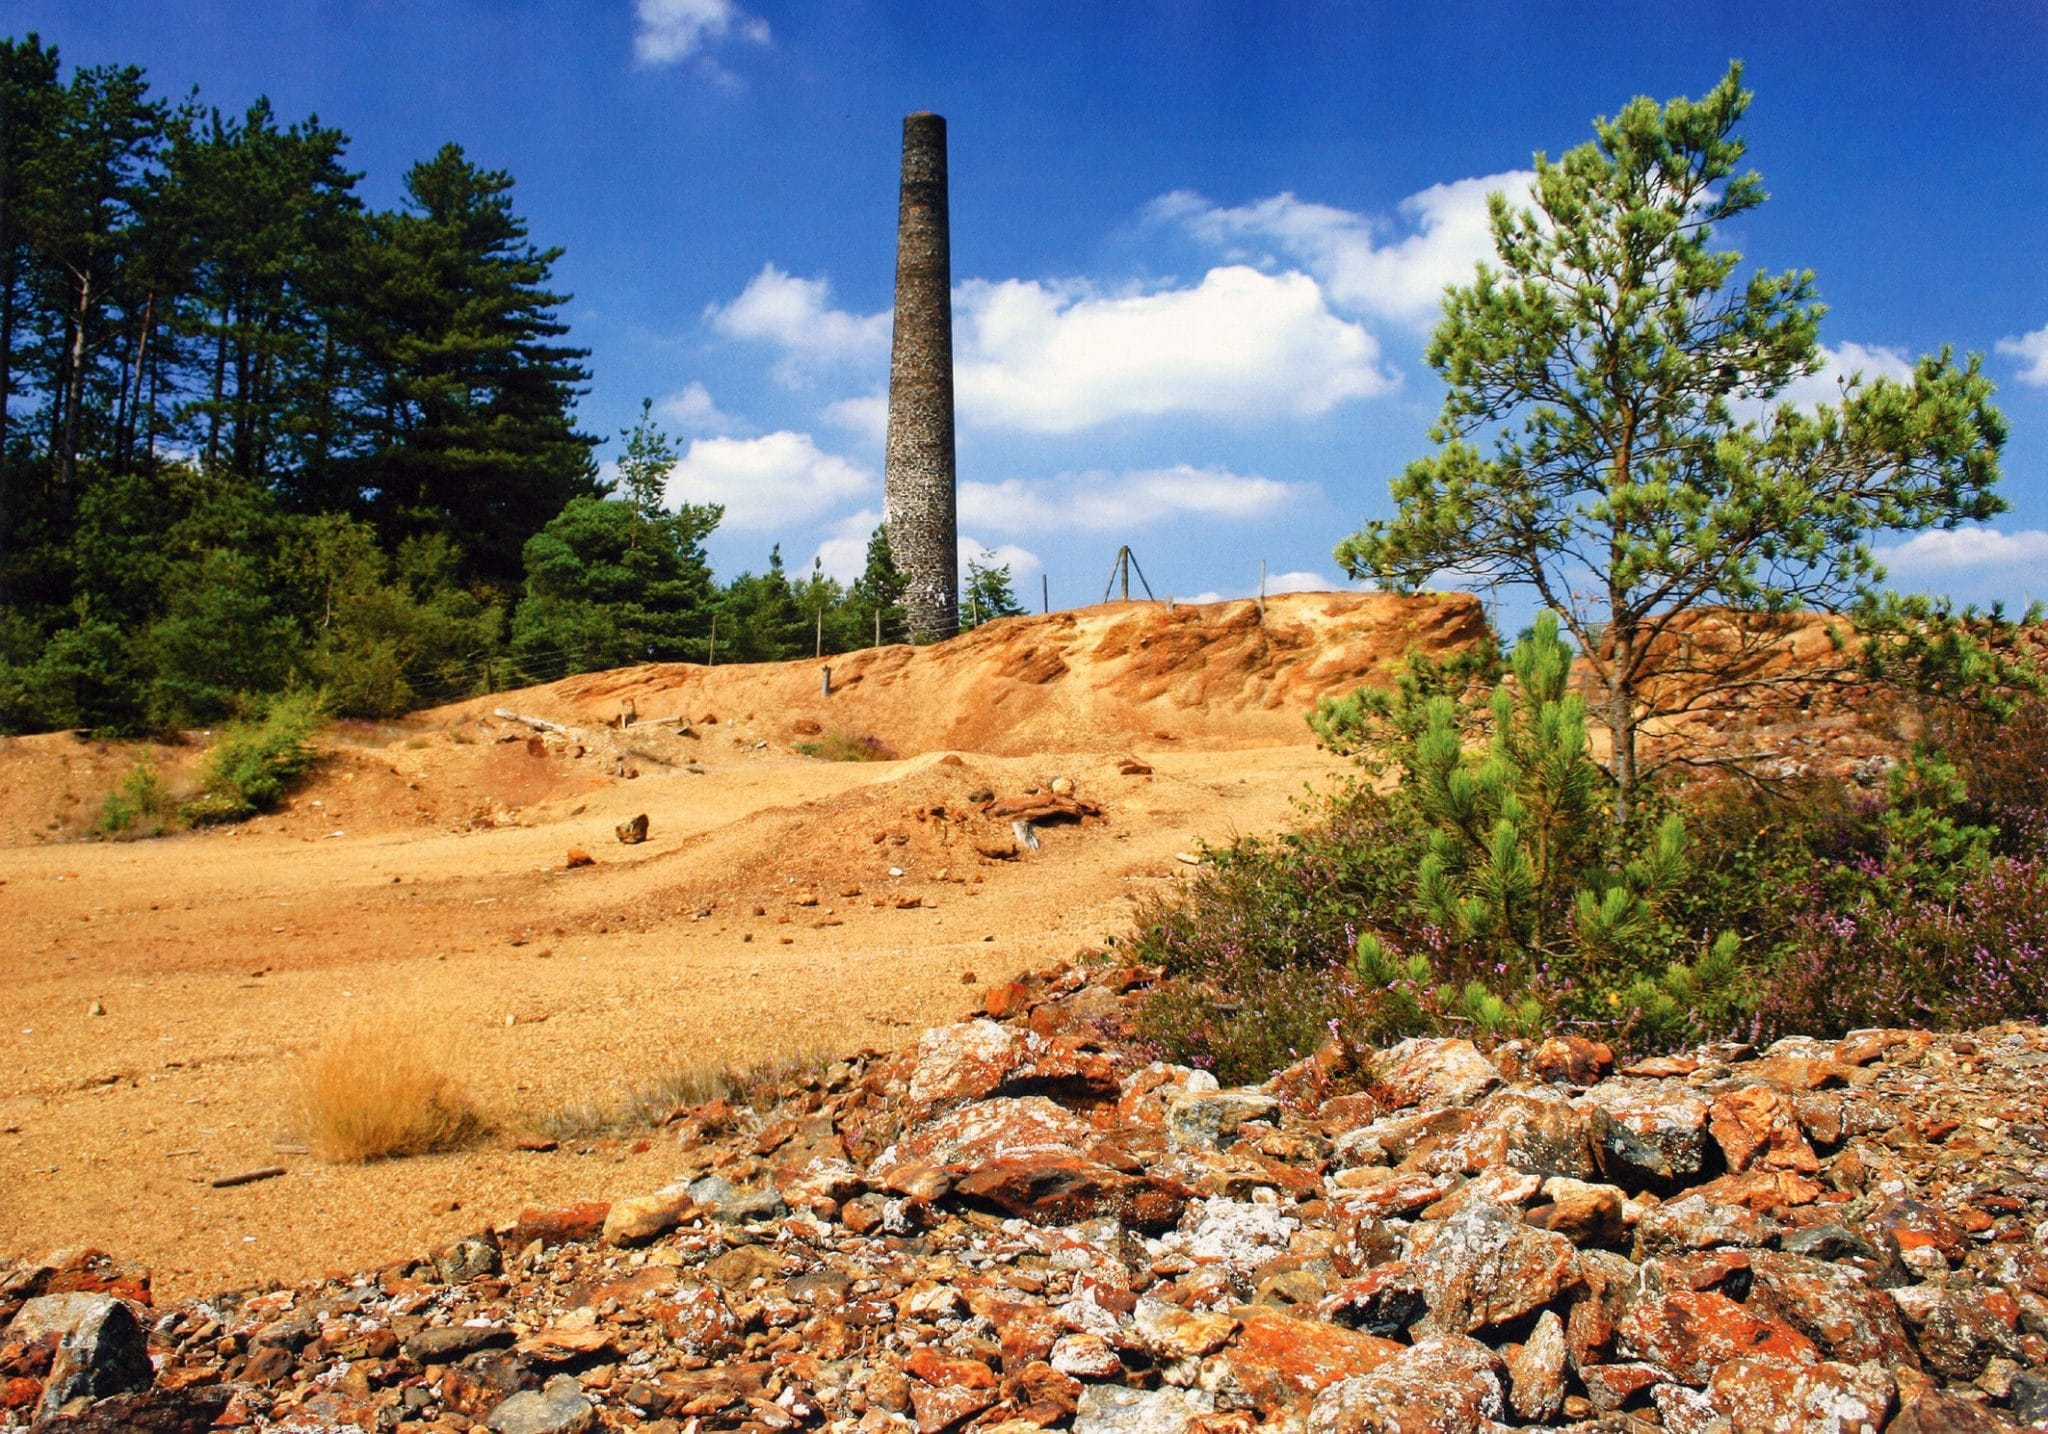 Photo of an arsenic mine tower with waste ground in front